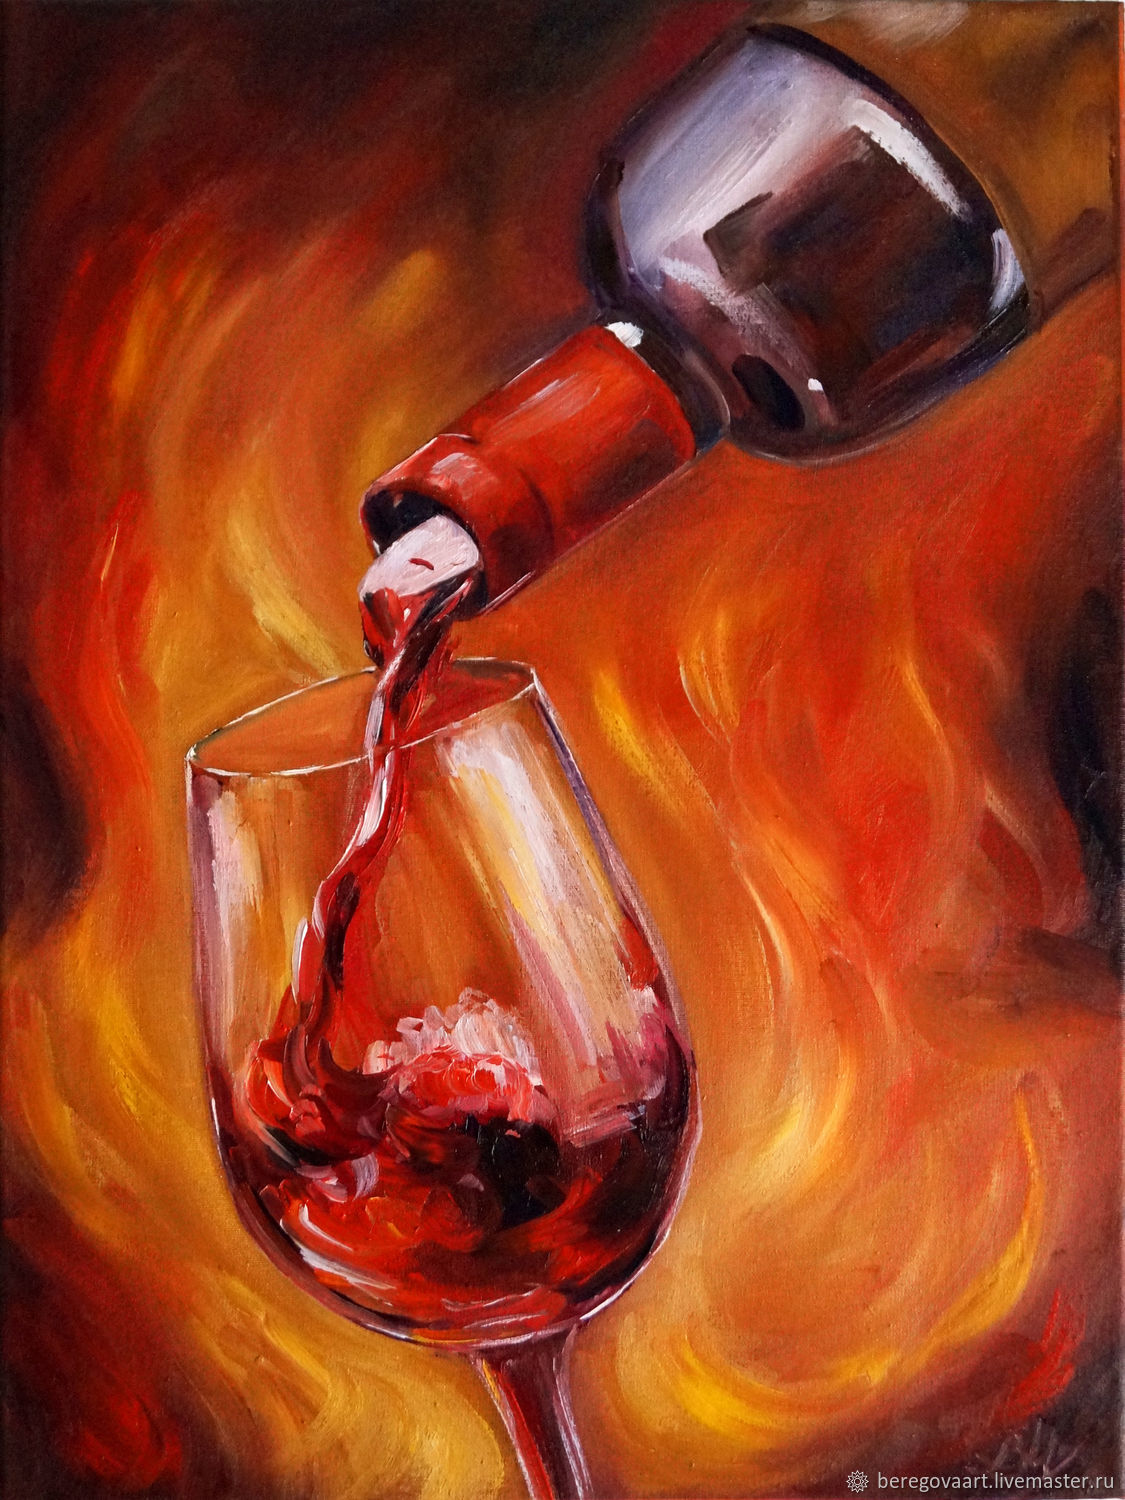 Painting glass of wine, bottle, still life with wine, Pictures, St. Petersburg,  Фото №1